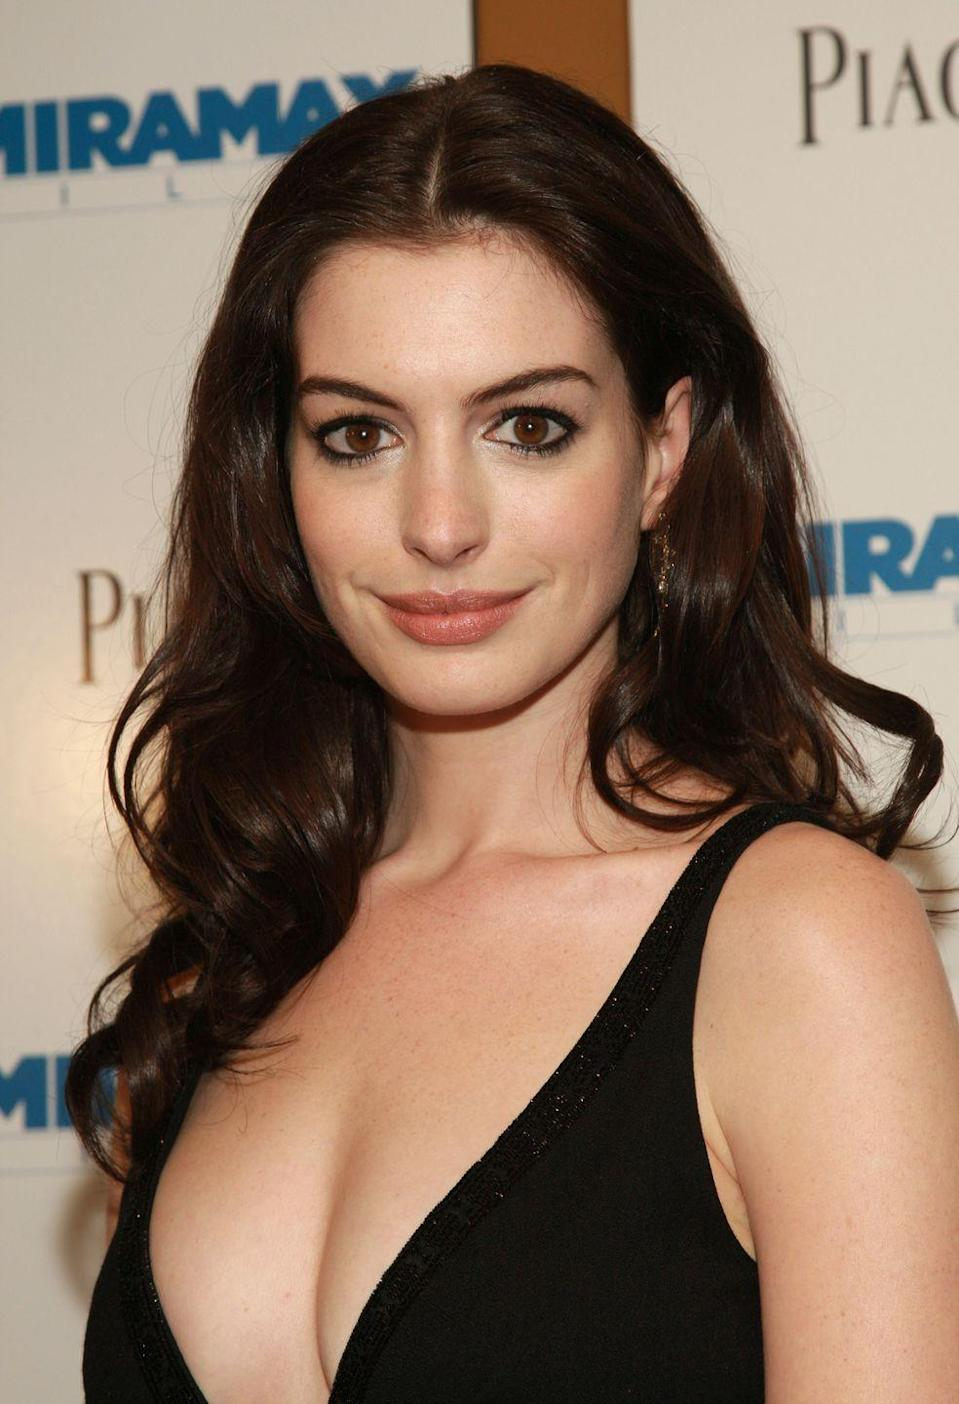 <p>Anne Hathaway rose to fame with leading roles in movies like <em>The Devil Wears Prada </em>and <em>The Princess Diaries</em>, and along the way became associated with her long brunette hair.</p>